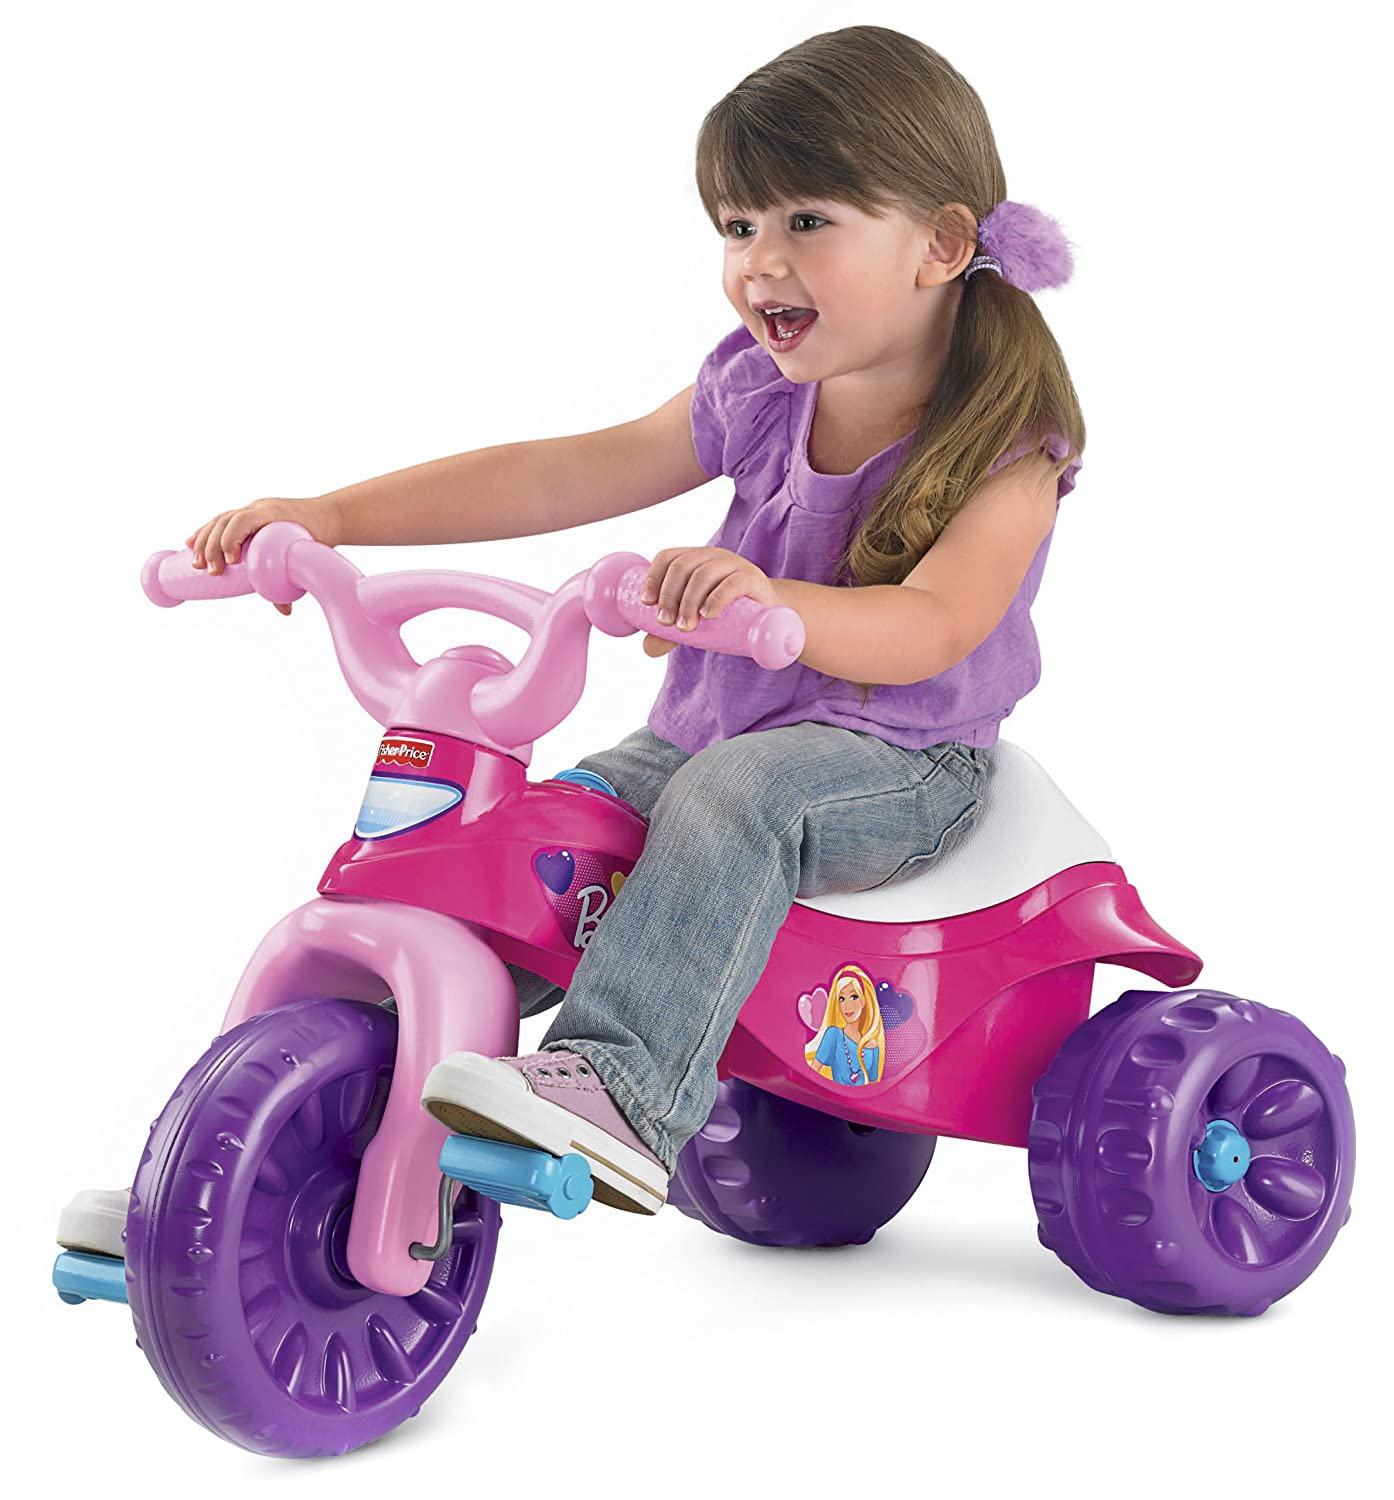 Top Toys For 3 Year Old Girls for 2016 Gift Canyon